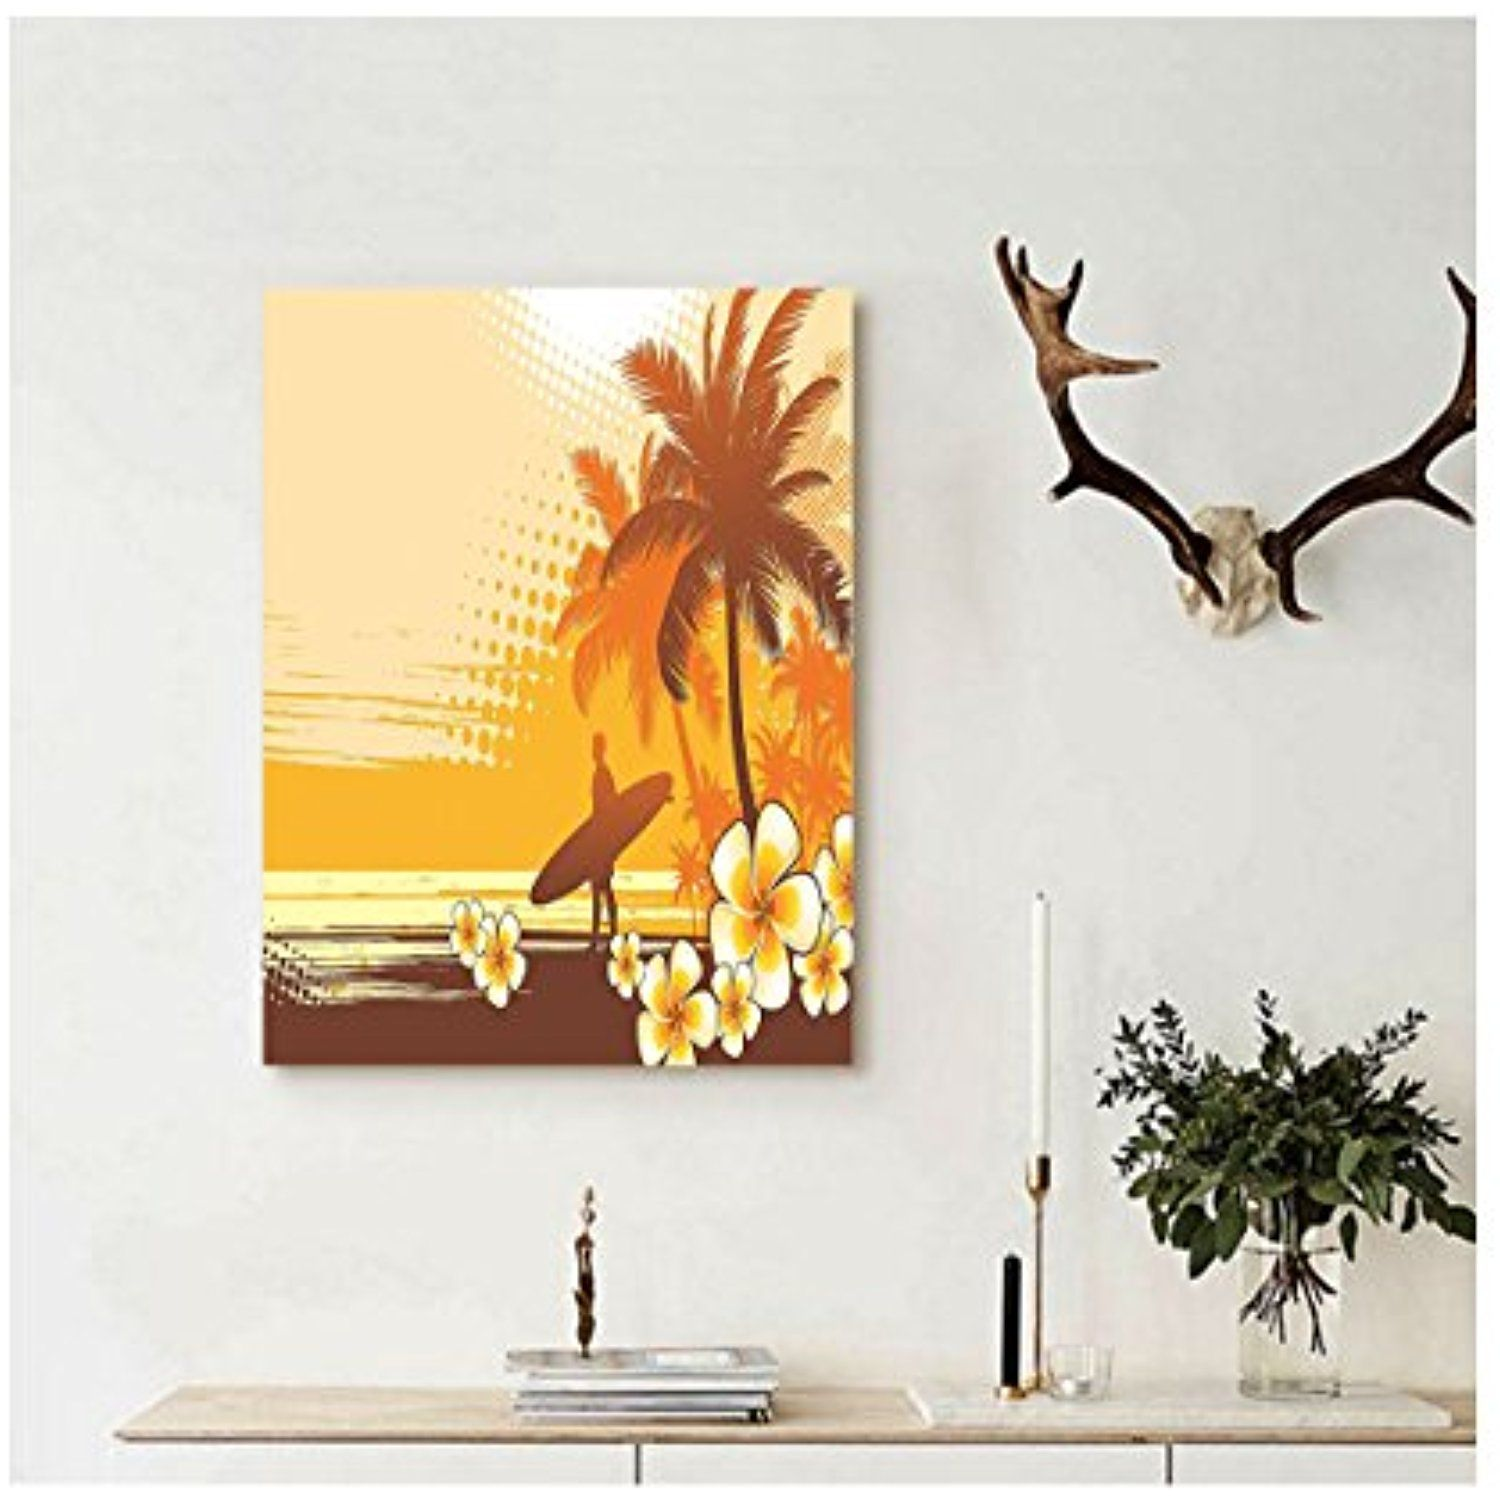 Liguo88 Custom canvas Surf Decor Wall Hanging Silhouette of a Surfer ...